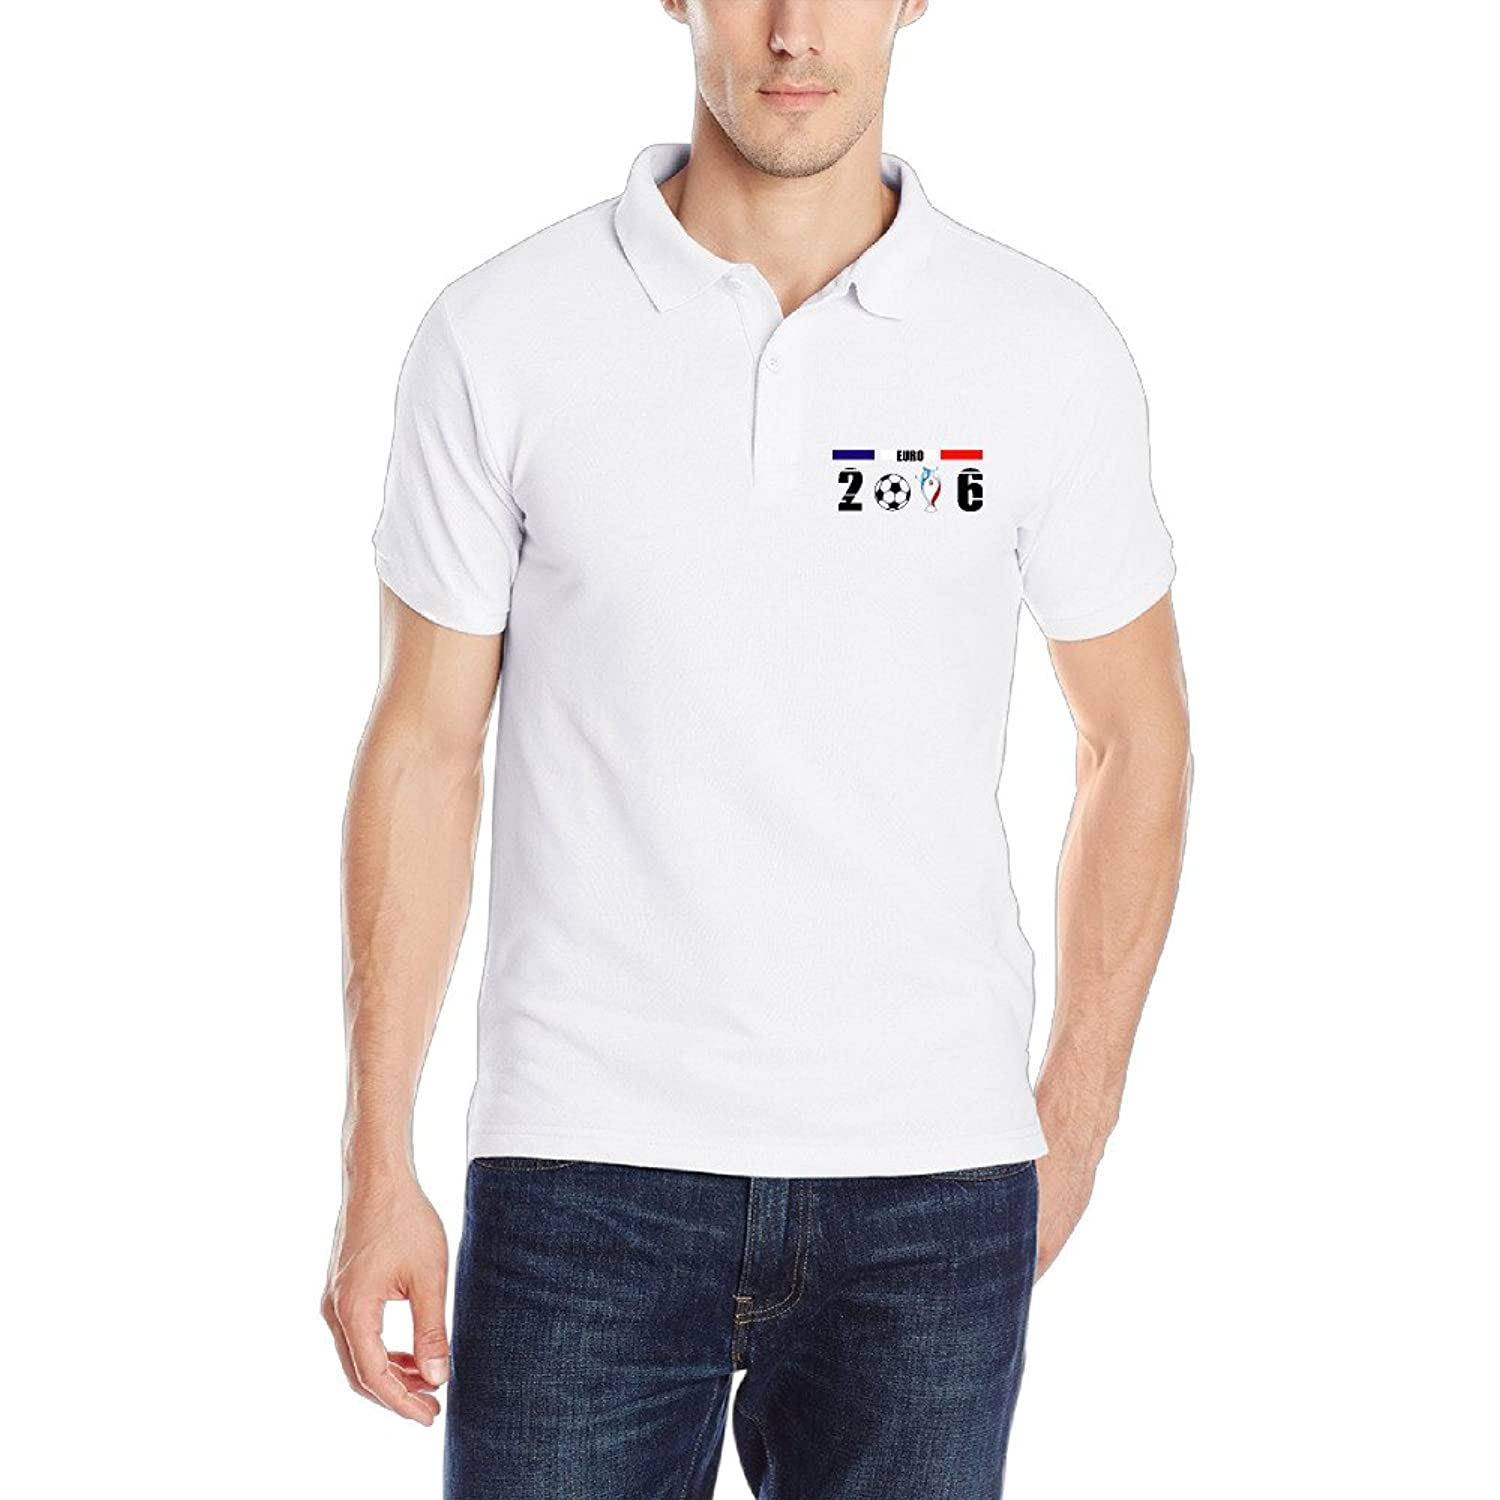 ZMILY Mens Dry 2016 France Euro Football Polo Shirts Short Sleeve Sport White